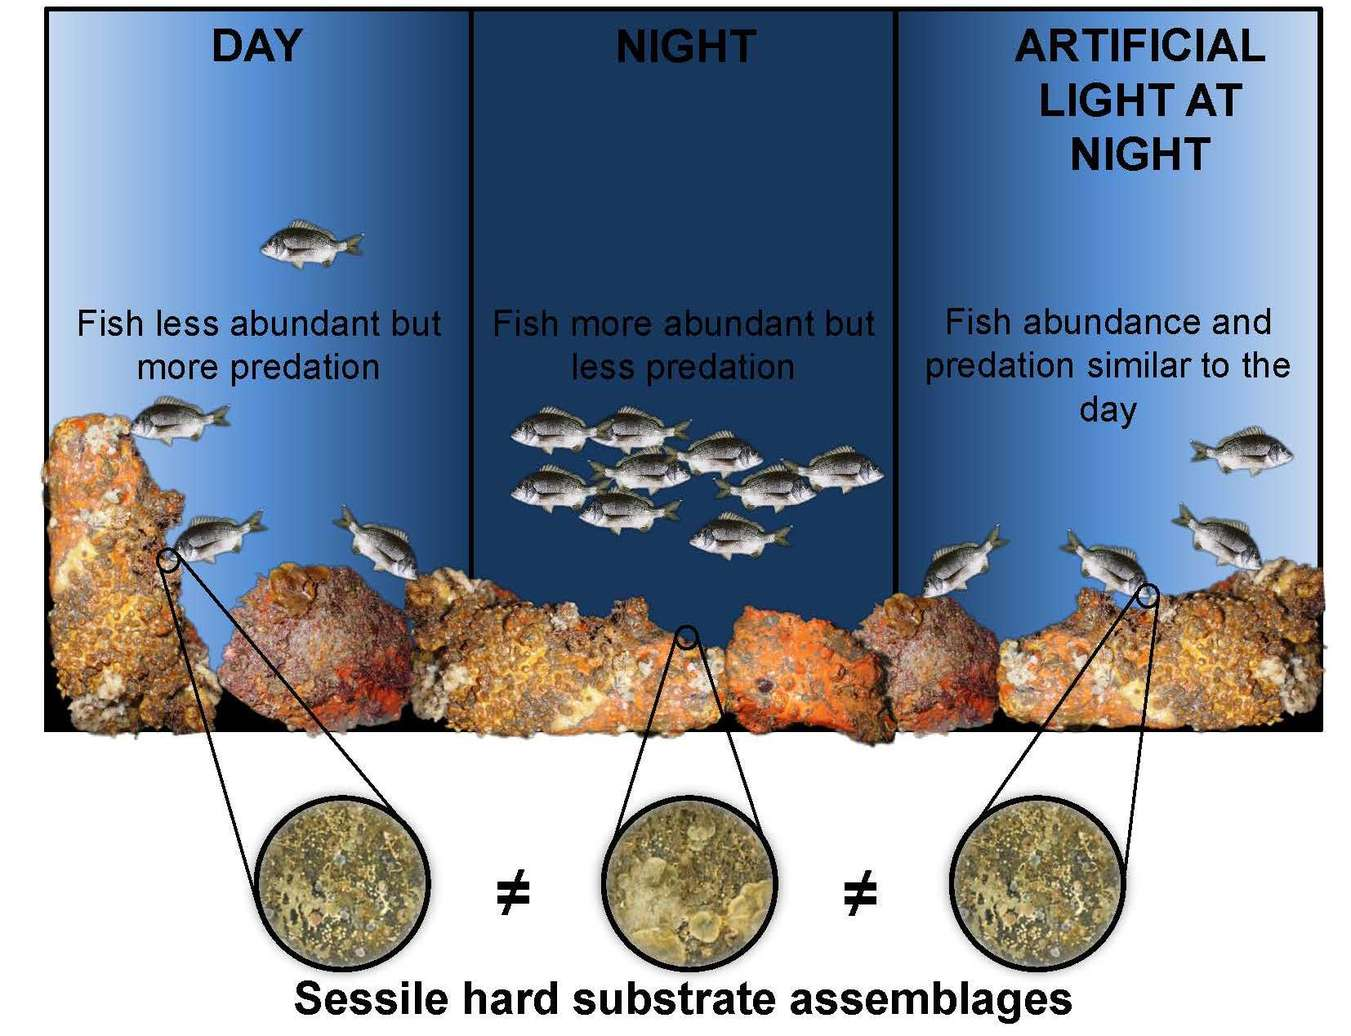 576, Bolton Et Al., Coastal Urban Lighting Has Ecological Consequences For  Multiple Trophic Levels Under The Sea, Pp1 9, Copyright (2017), With  Permission ...